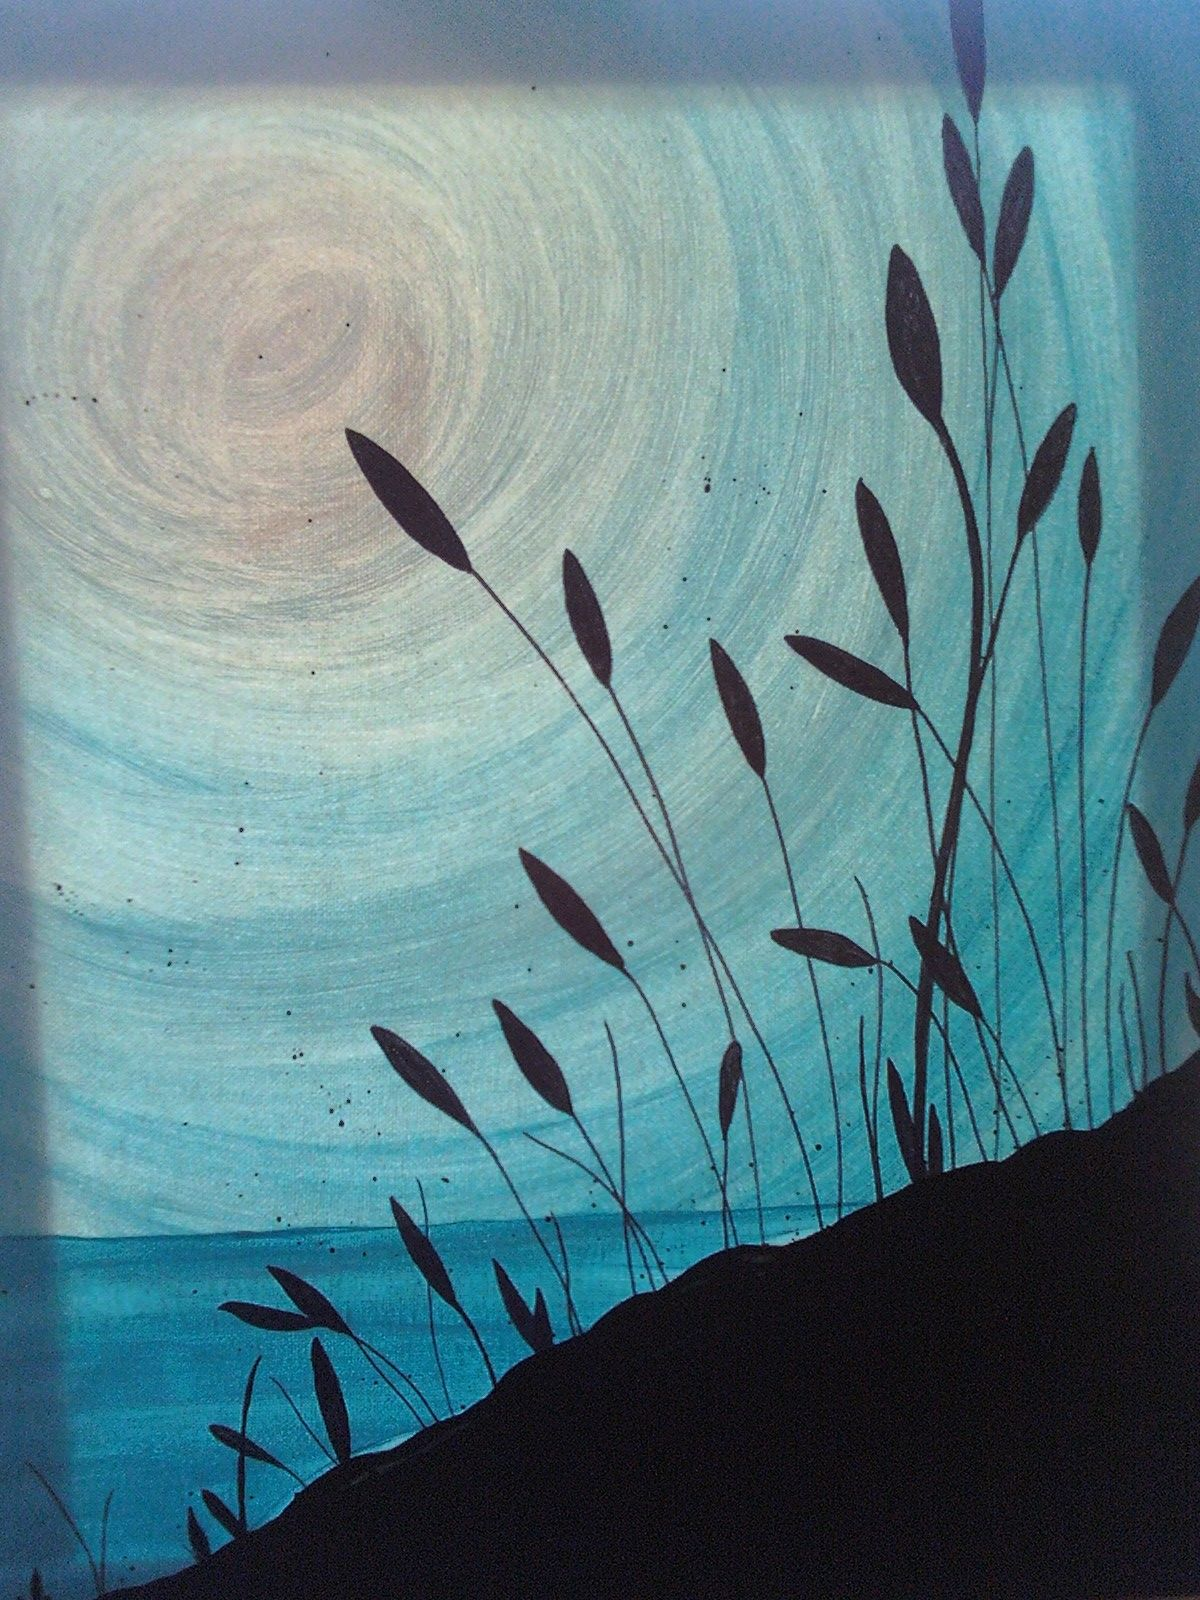 Monochromatic silhouette - this could be a great idea to do with a Gelli  plate process!